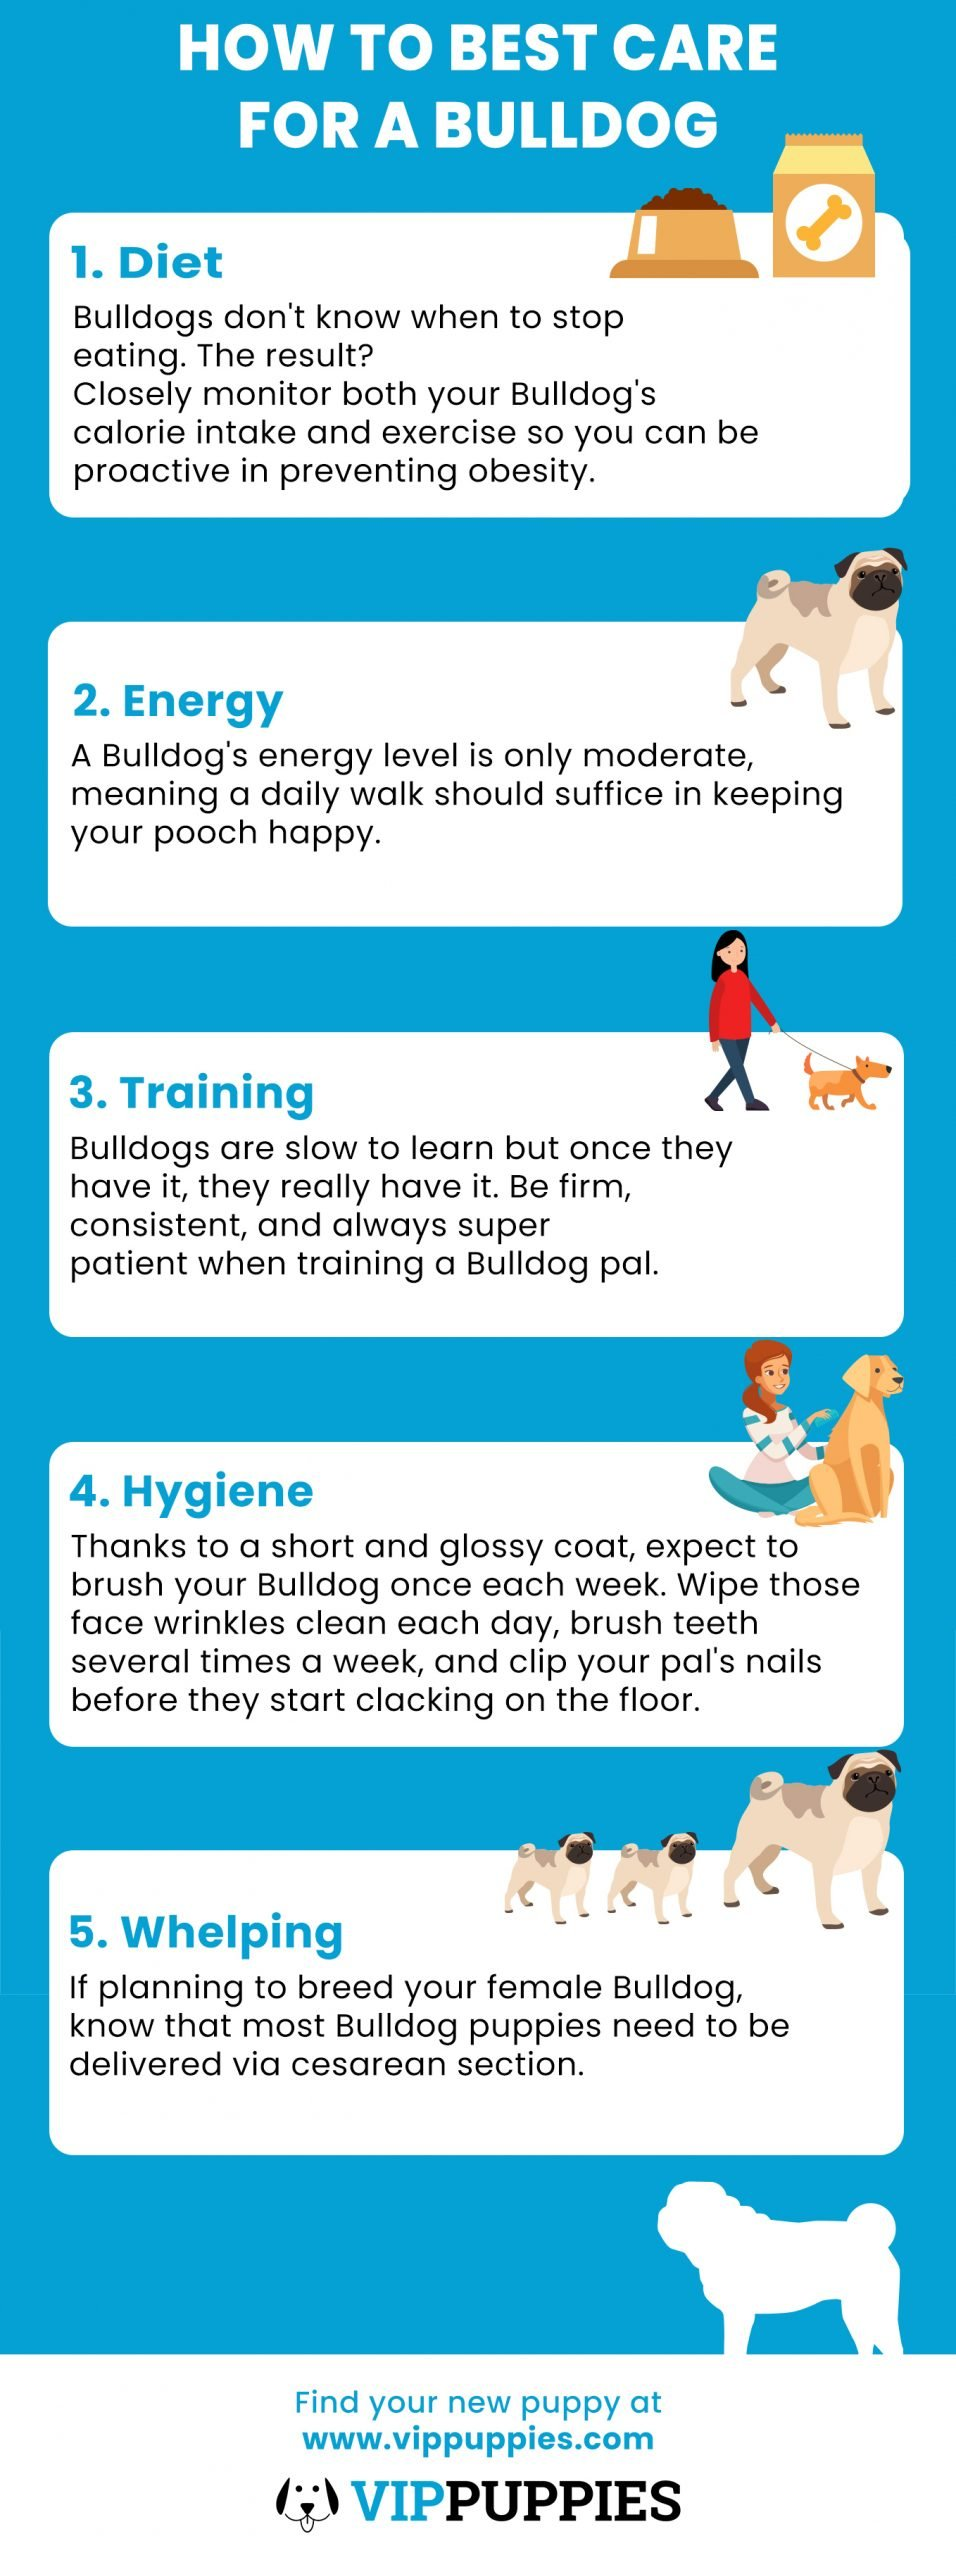 How to Best Care for a Bulldog Infographic